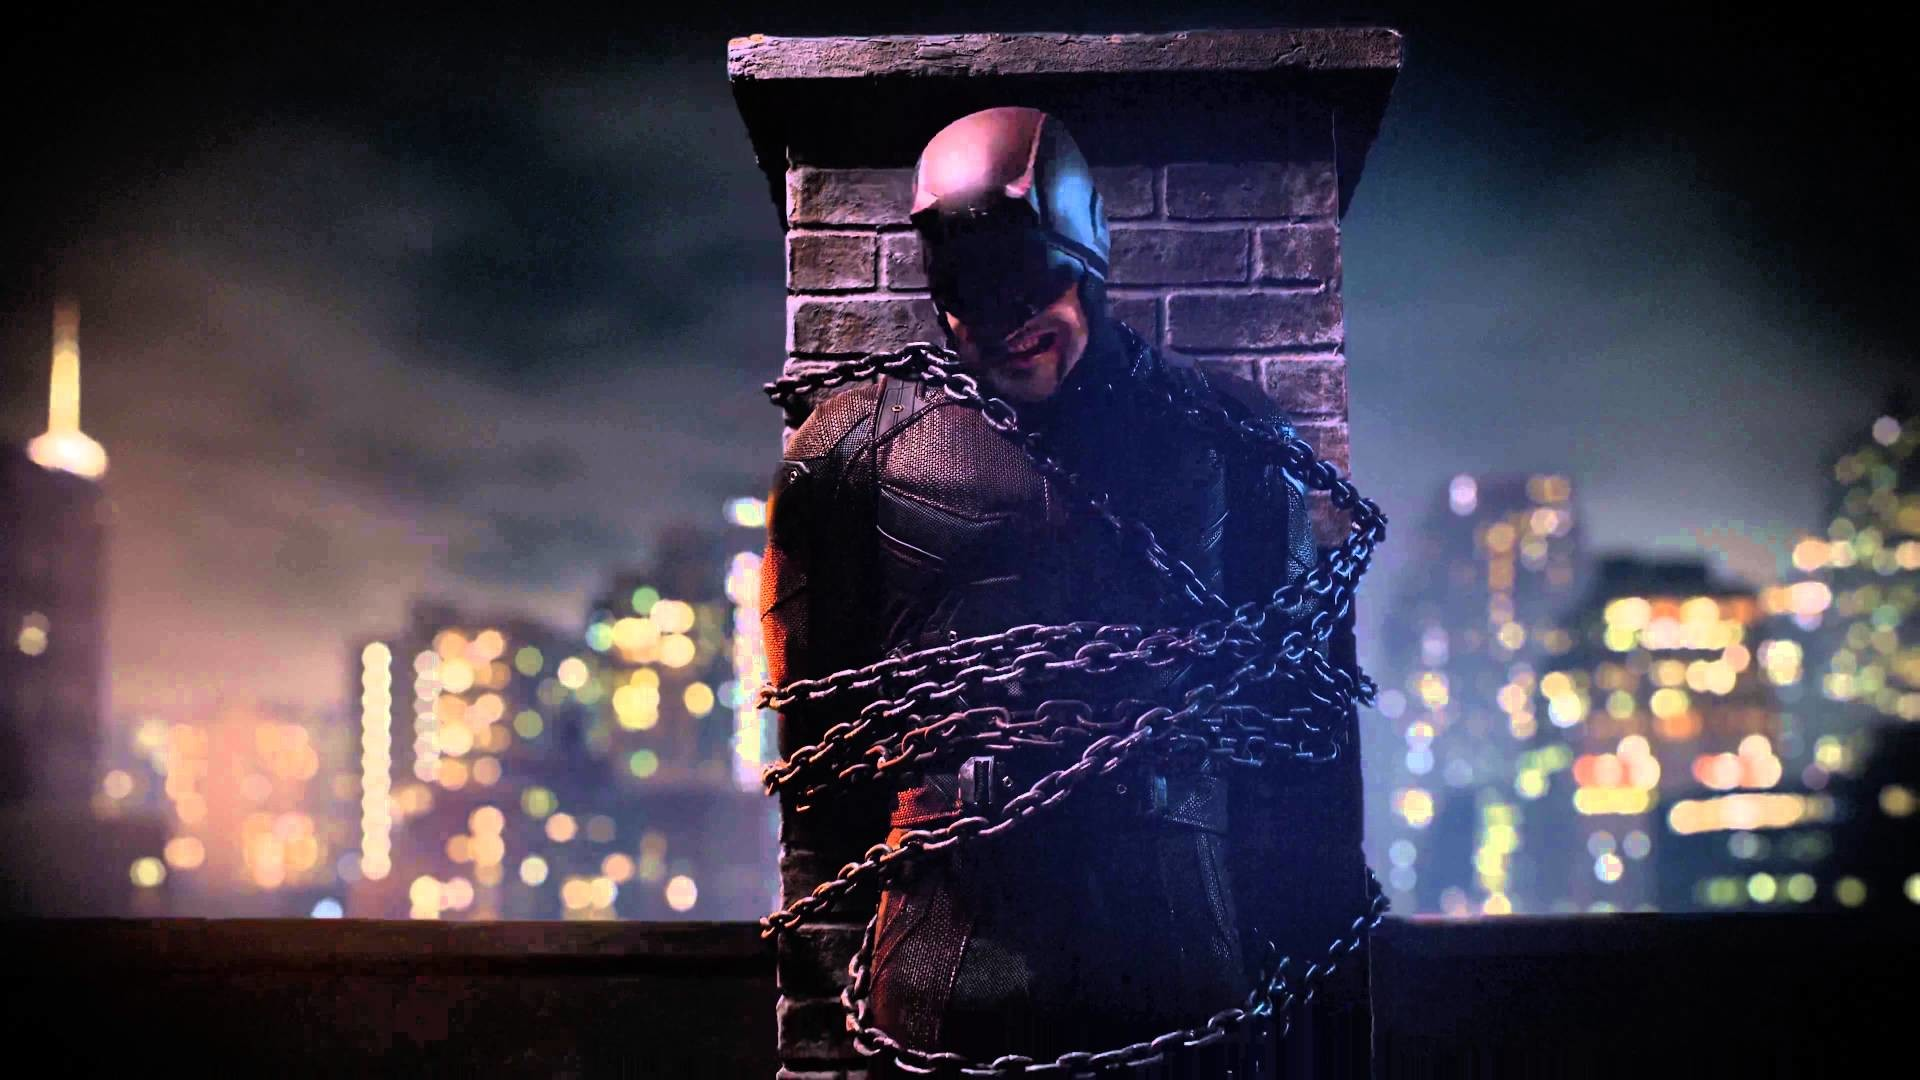 Netflix daredevil hd wallpaper 85 images for Where to get wallpaper